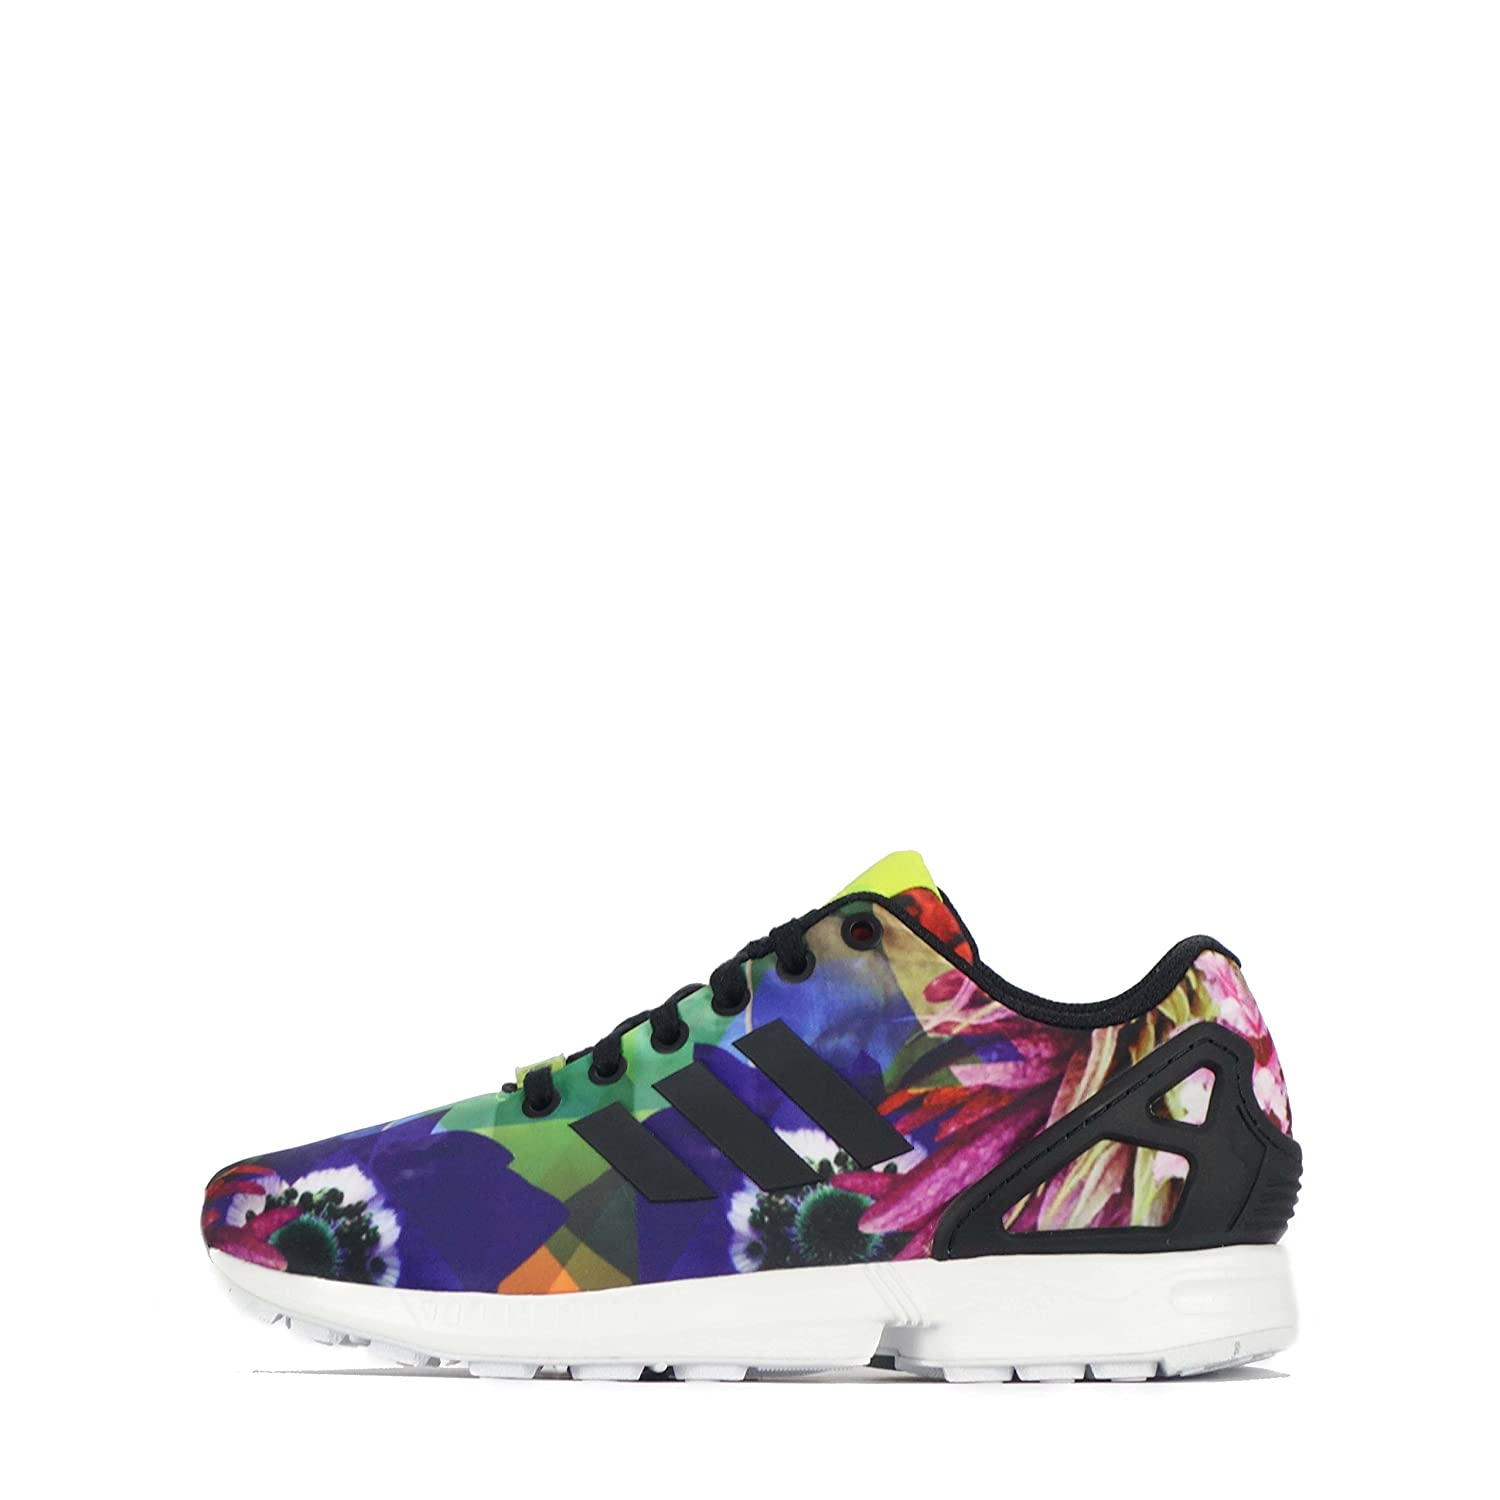 adidas Originals Zx Flux - Zapatillas para hombre UK4.5 EU37 1/3 US5|Black Multi